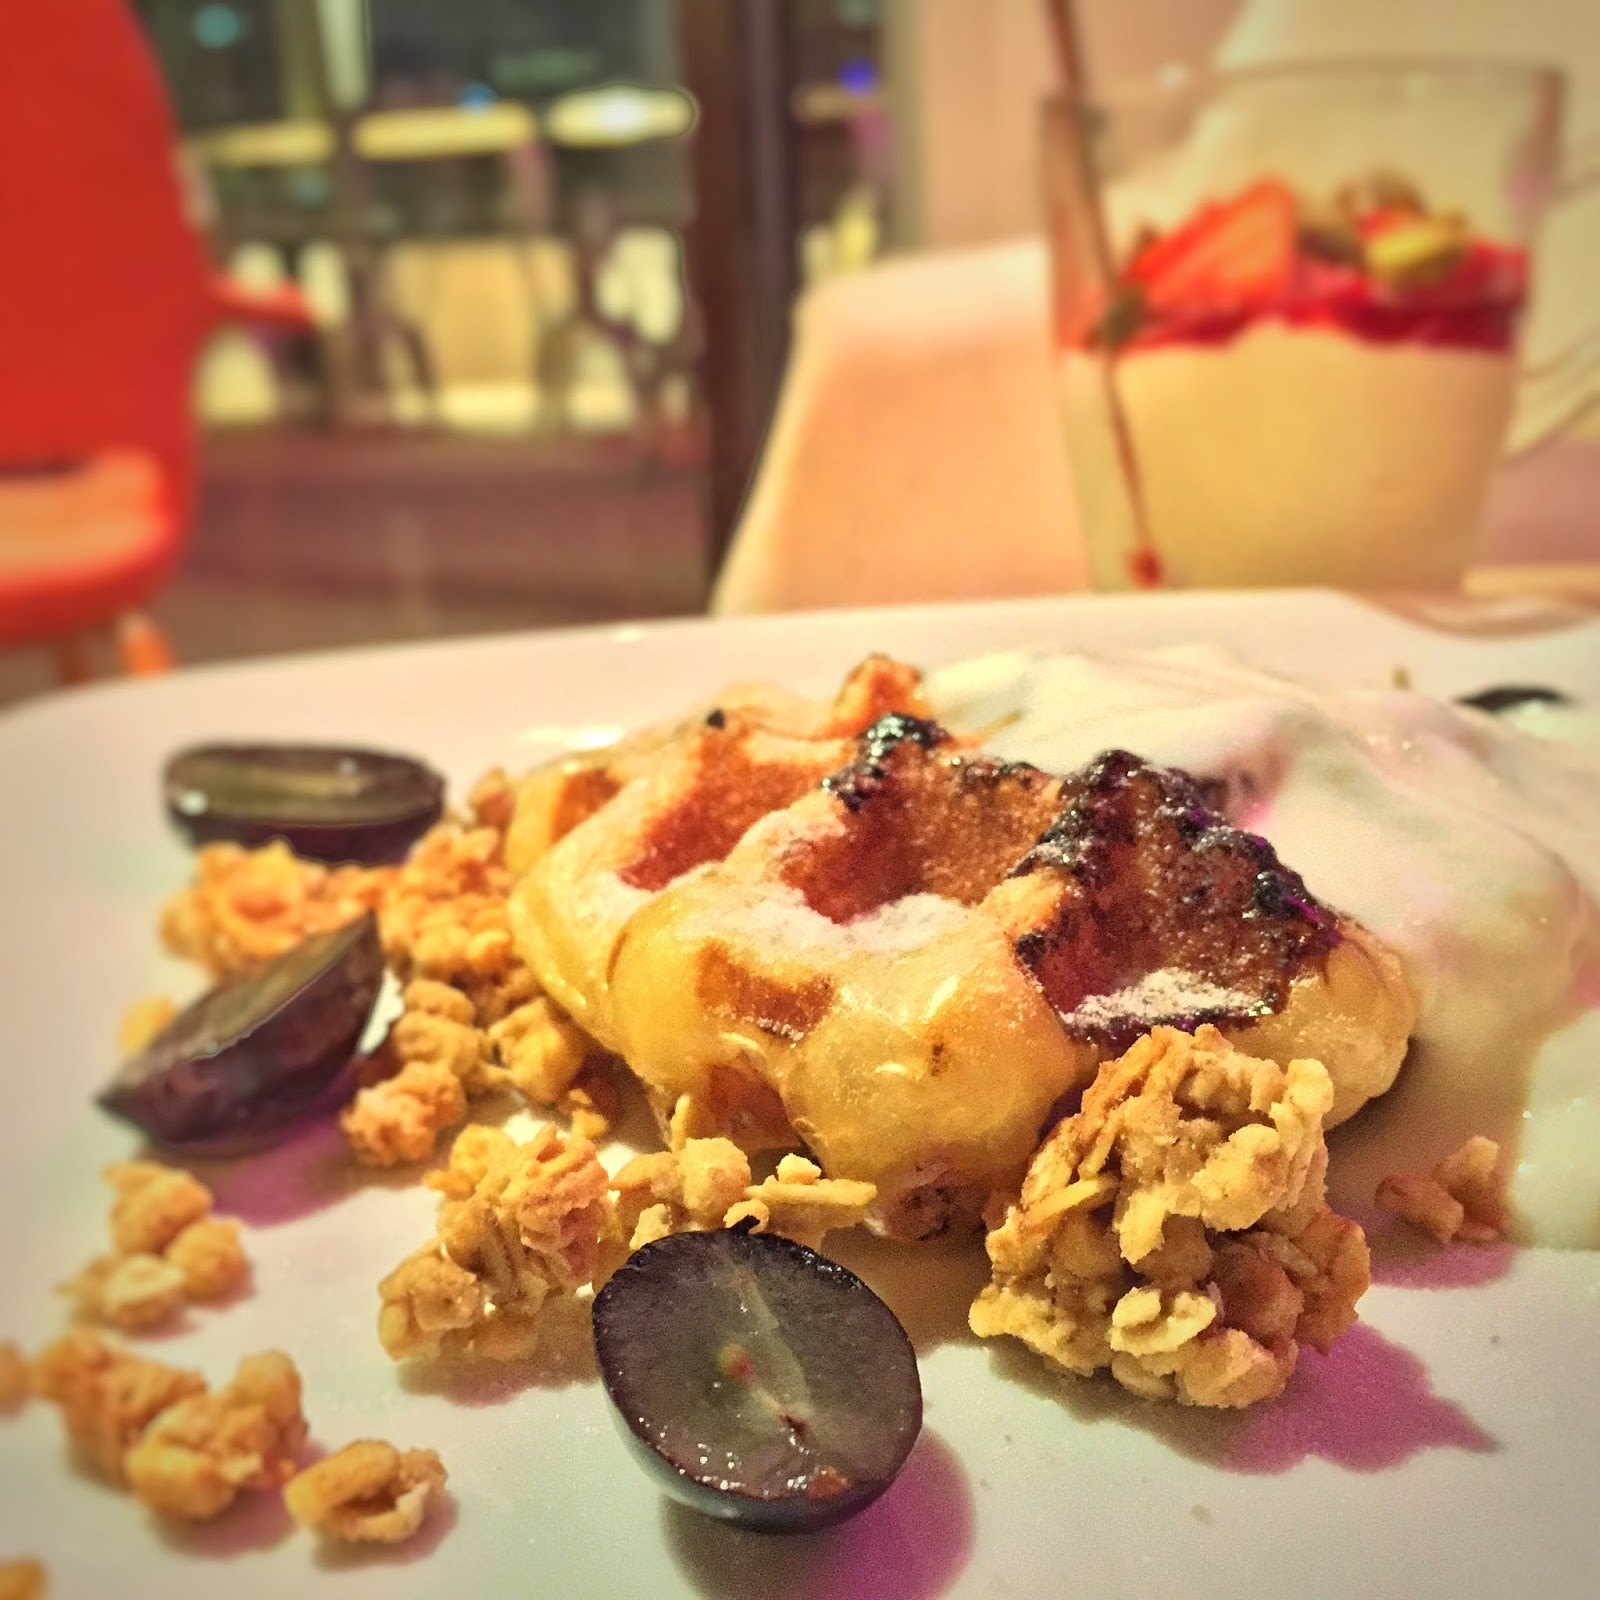 Penang Brown Pocket Cafe - Yo-Grape Waffle